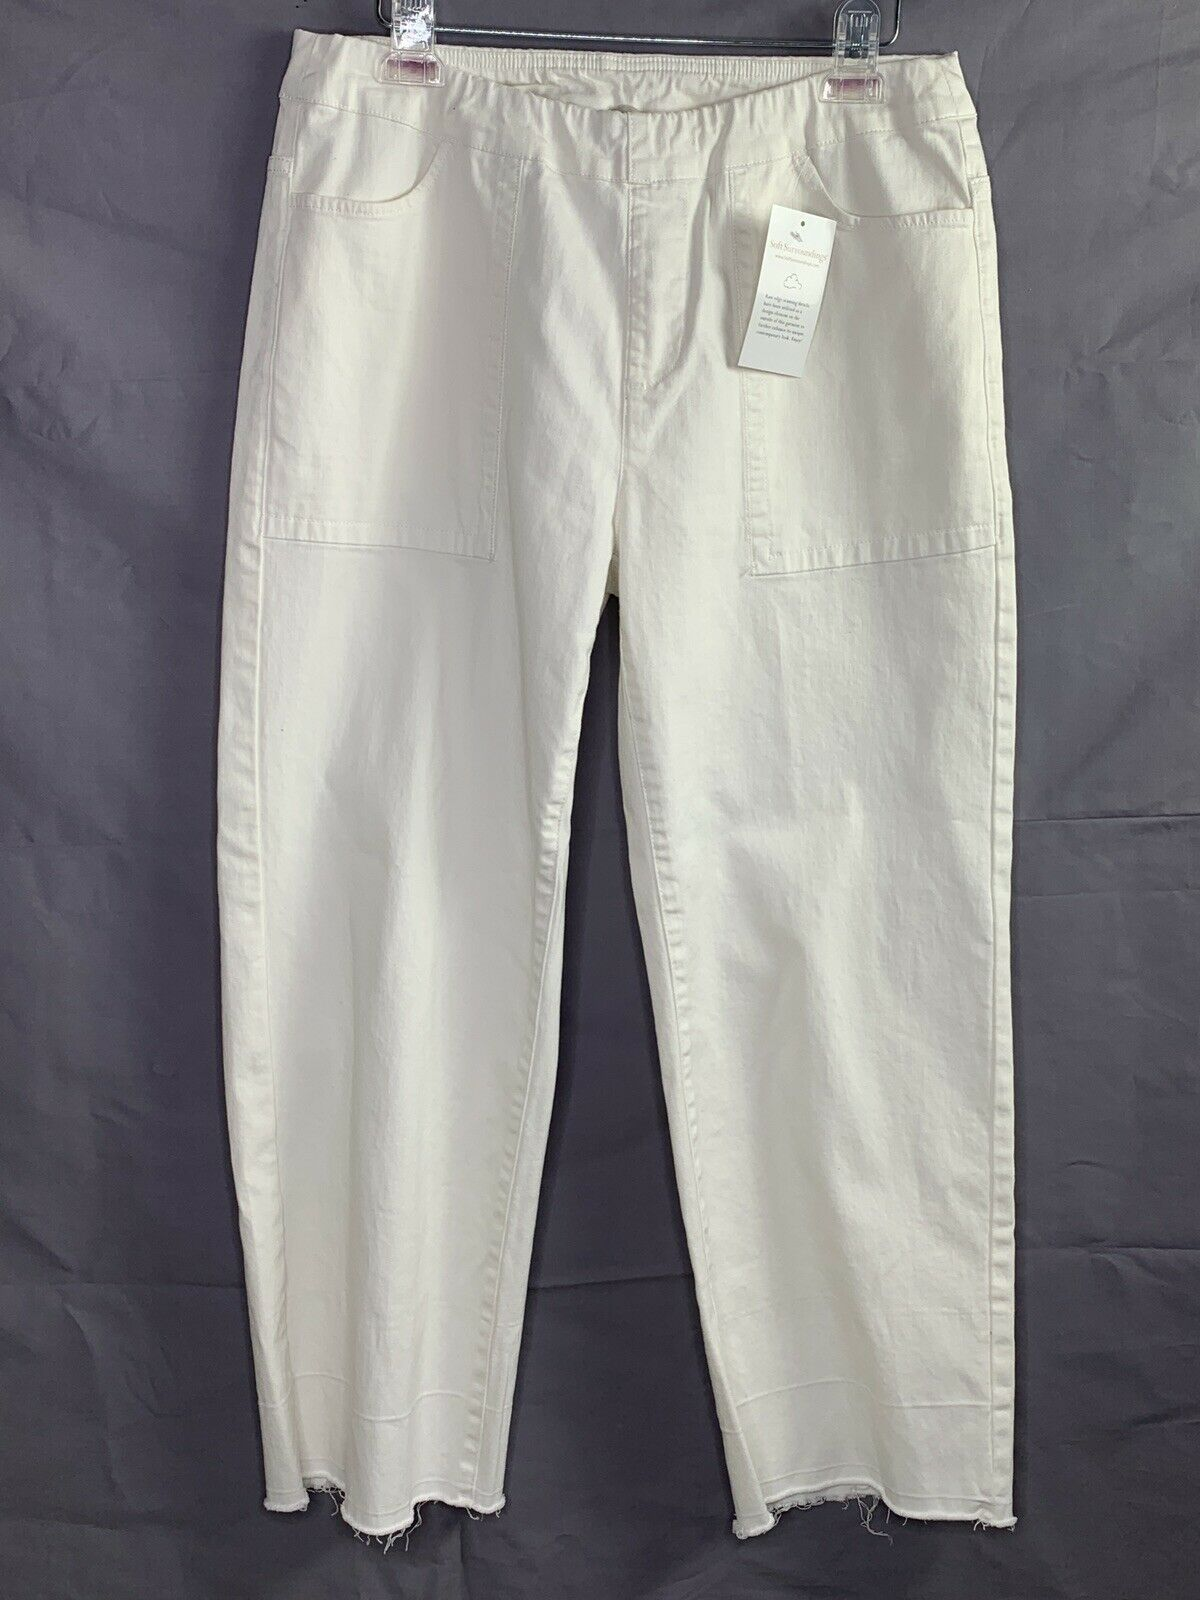 Soft Surroundings White Pull On Pants Size Petite Medium Raw Edge Hem